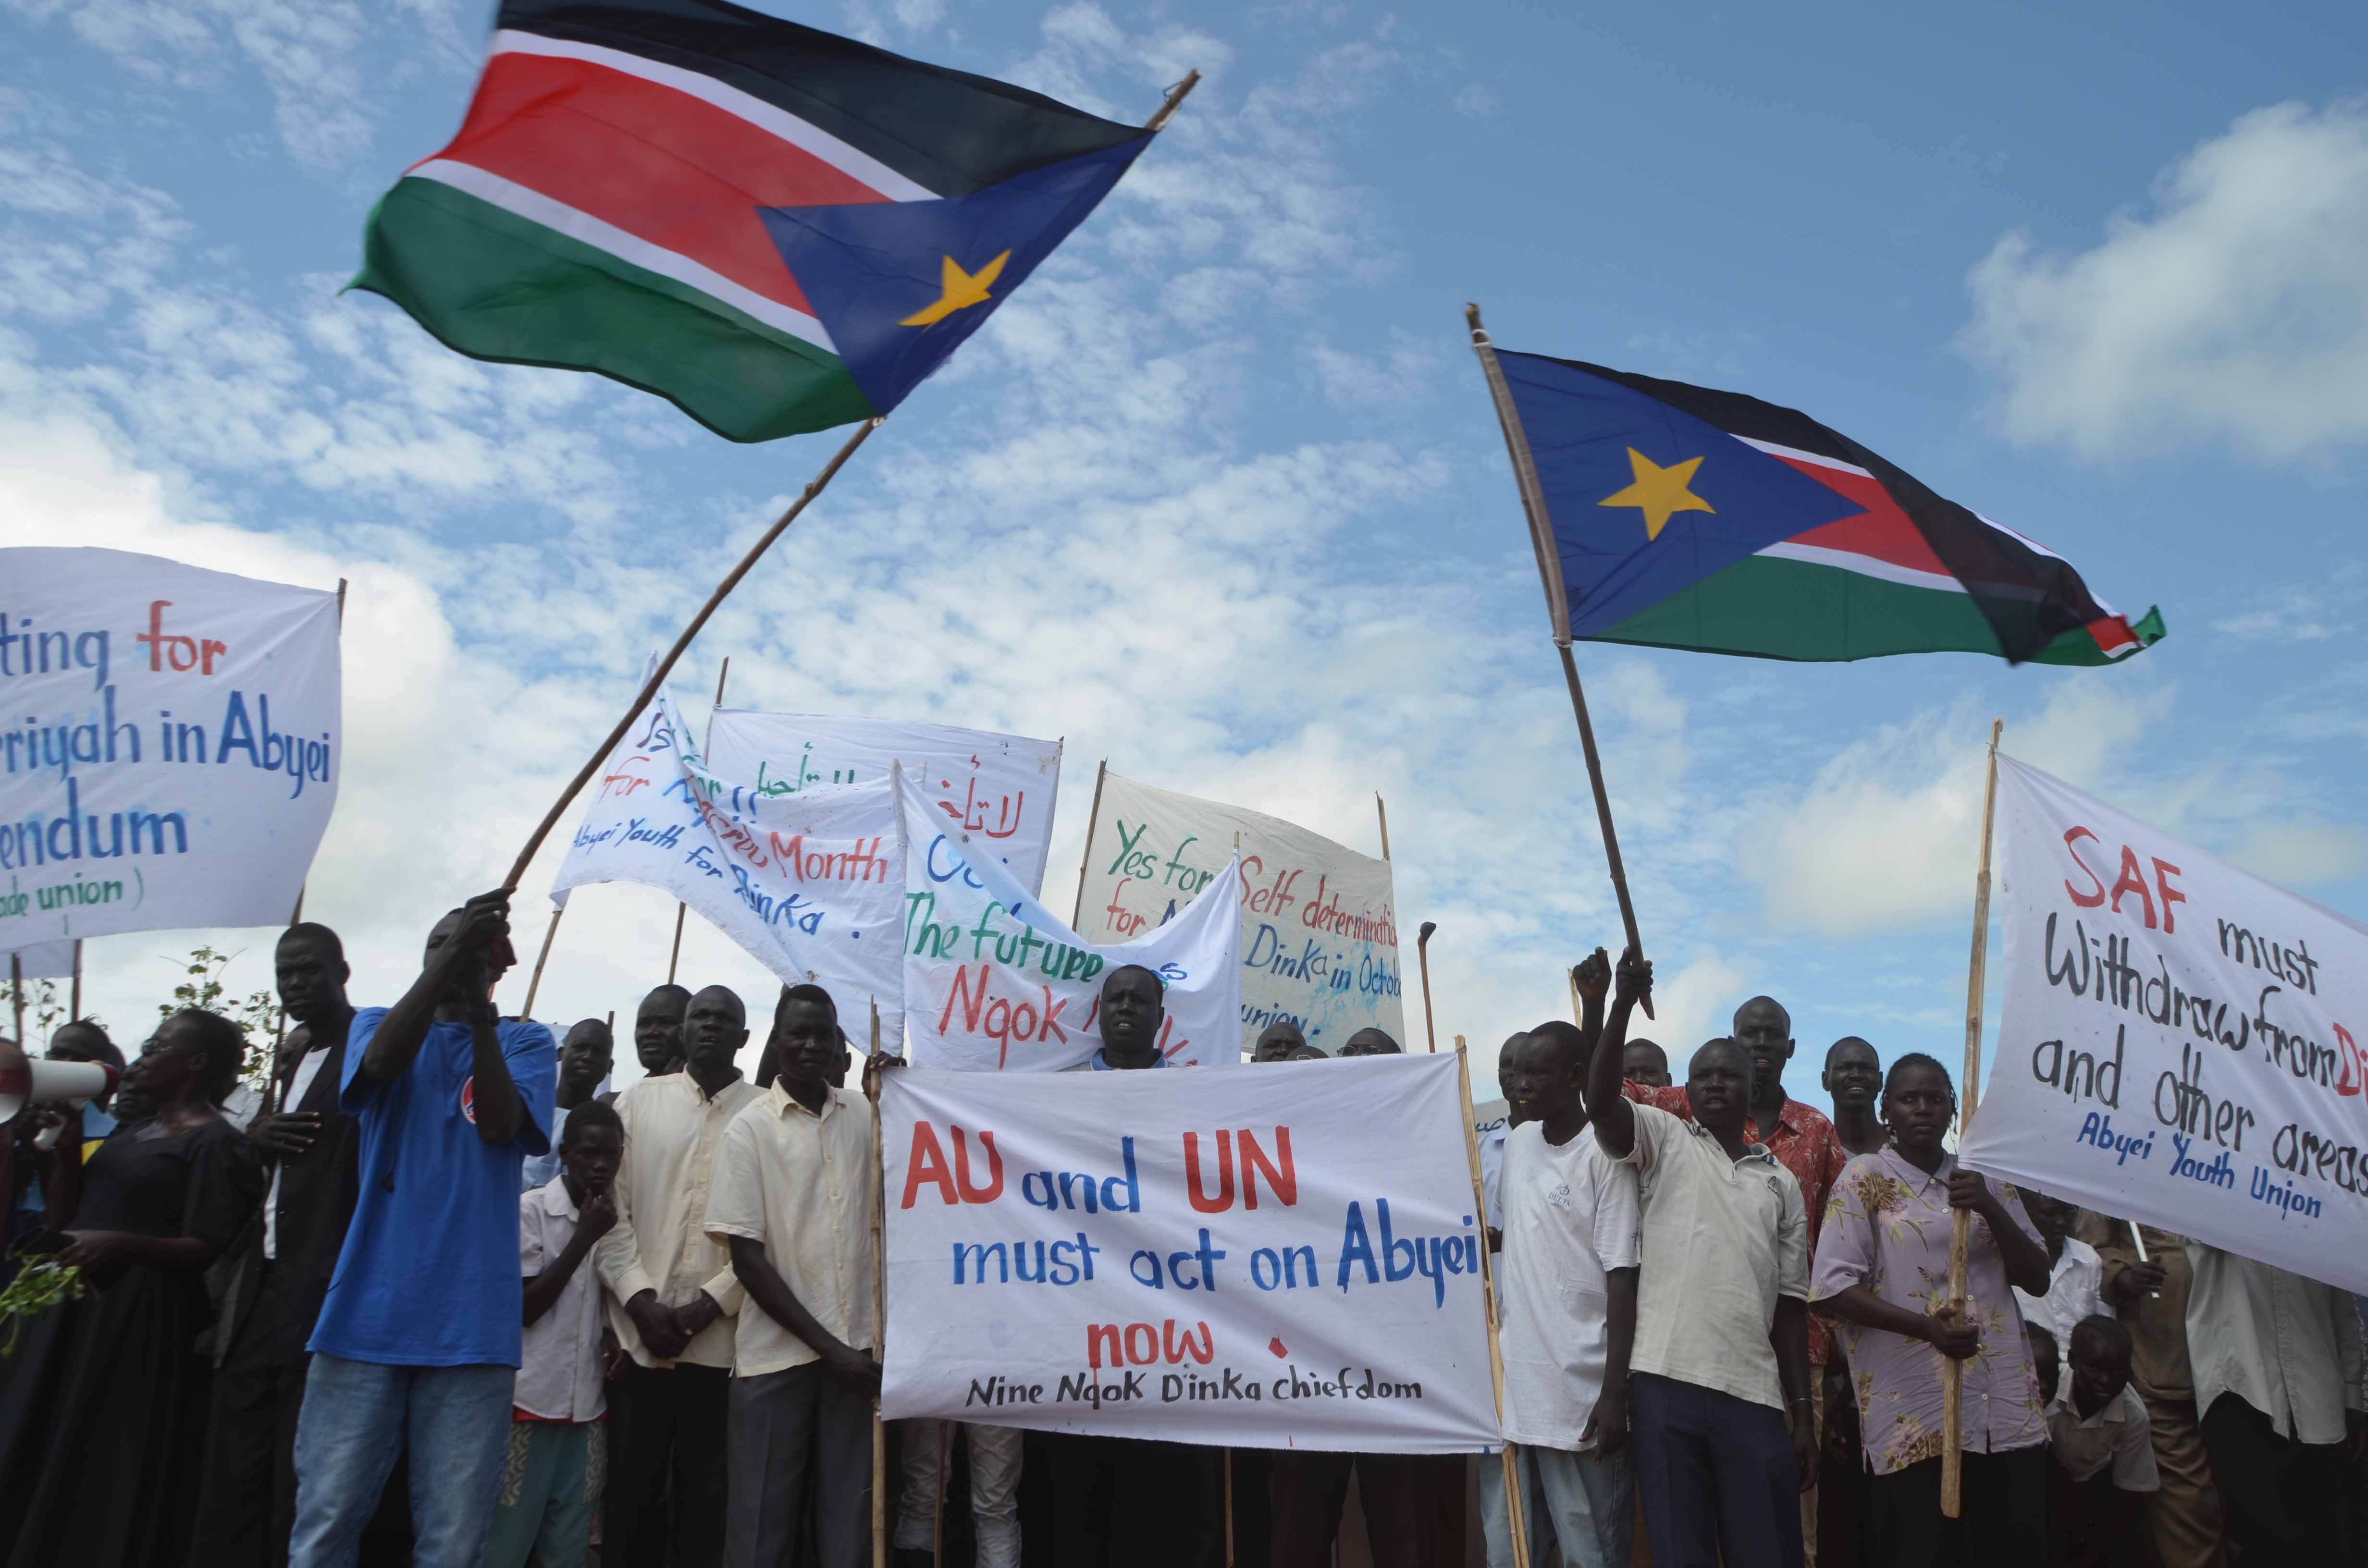 Resident of Abyei, a disputed region on the border between Sudan and South Sudan, demonstrate to demand a long-awaited self-determination referendum